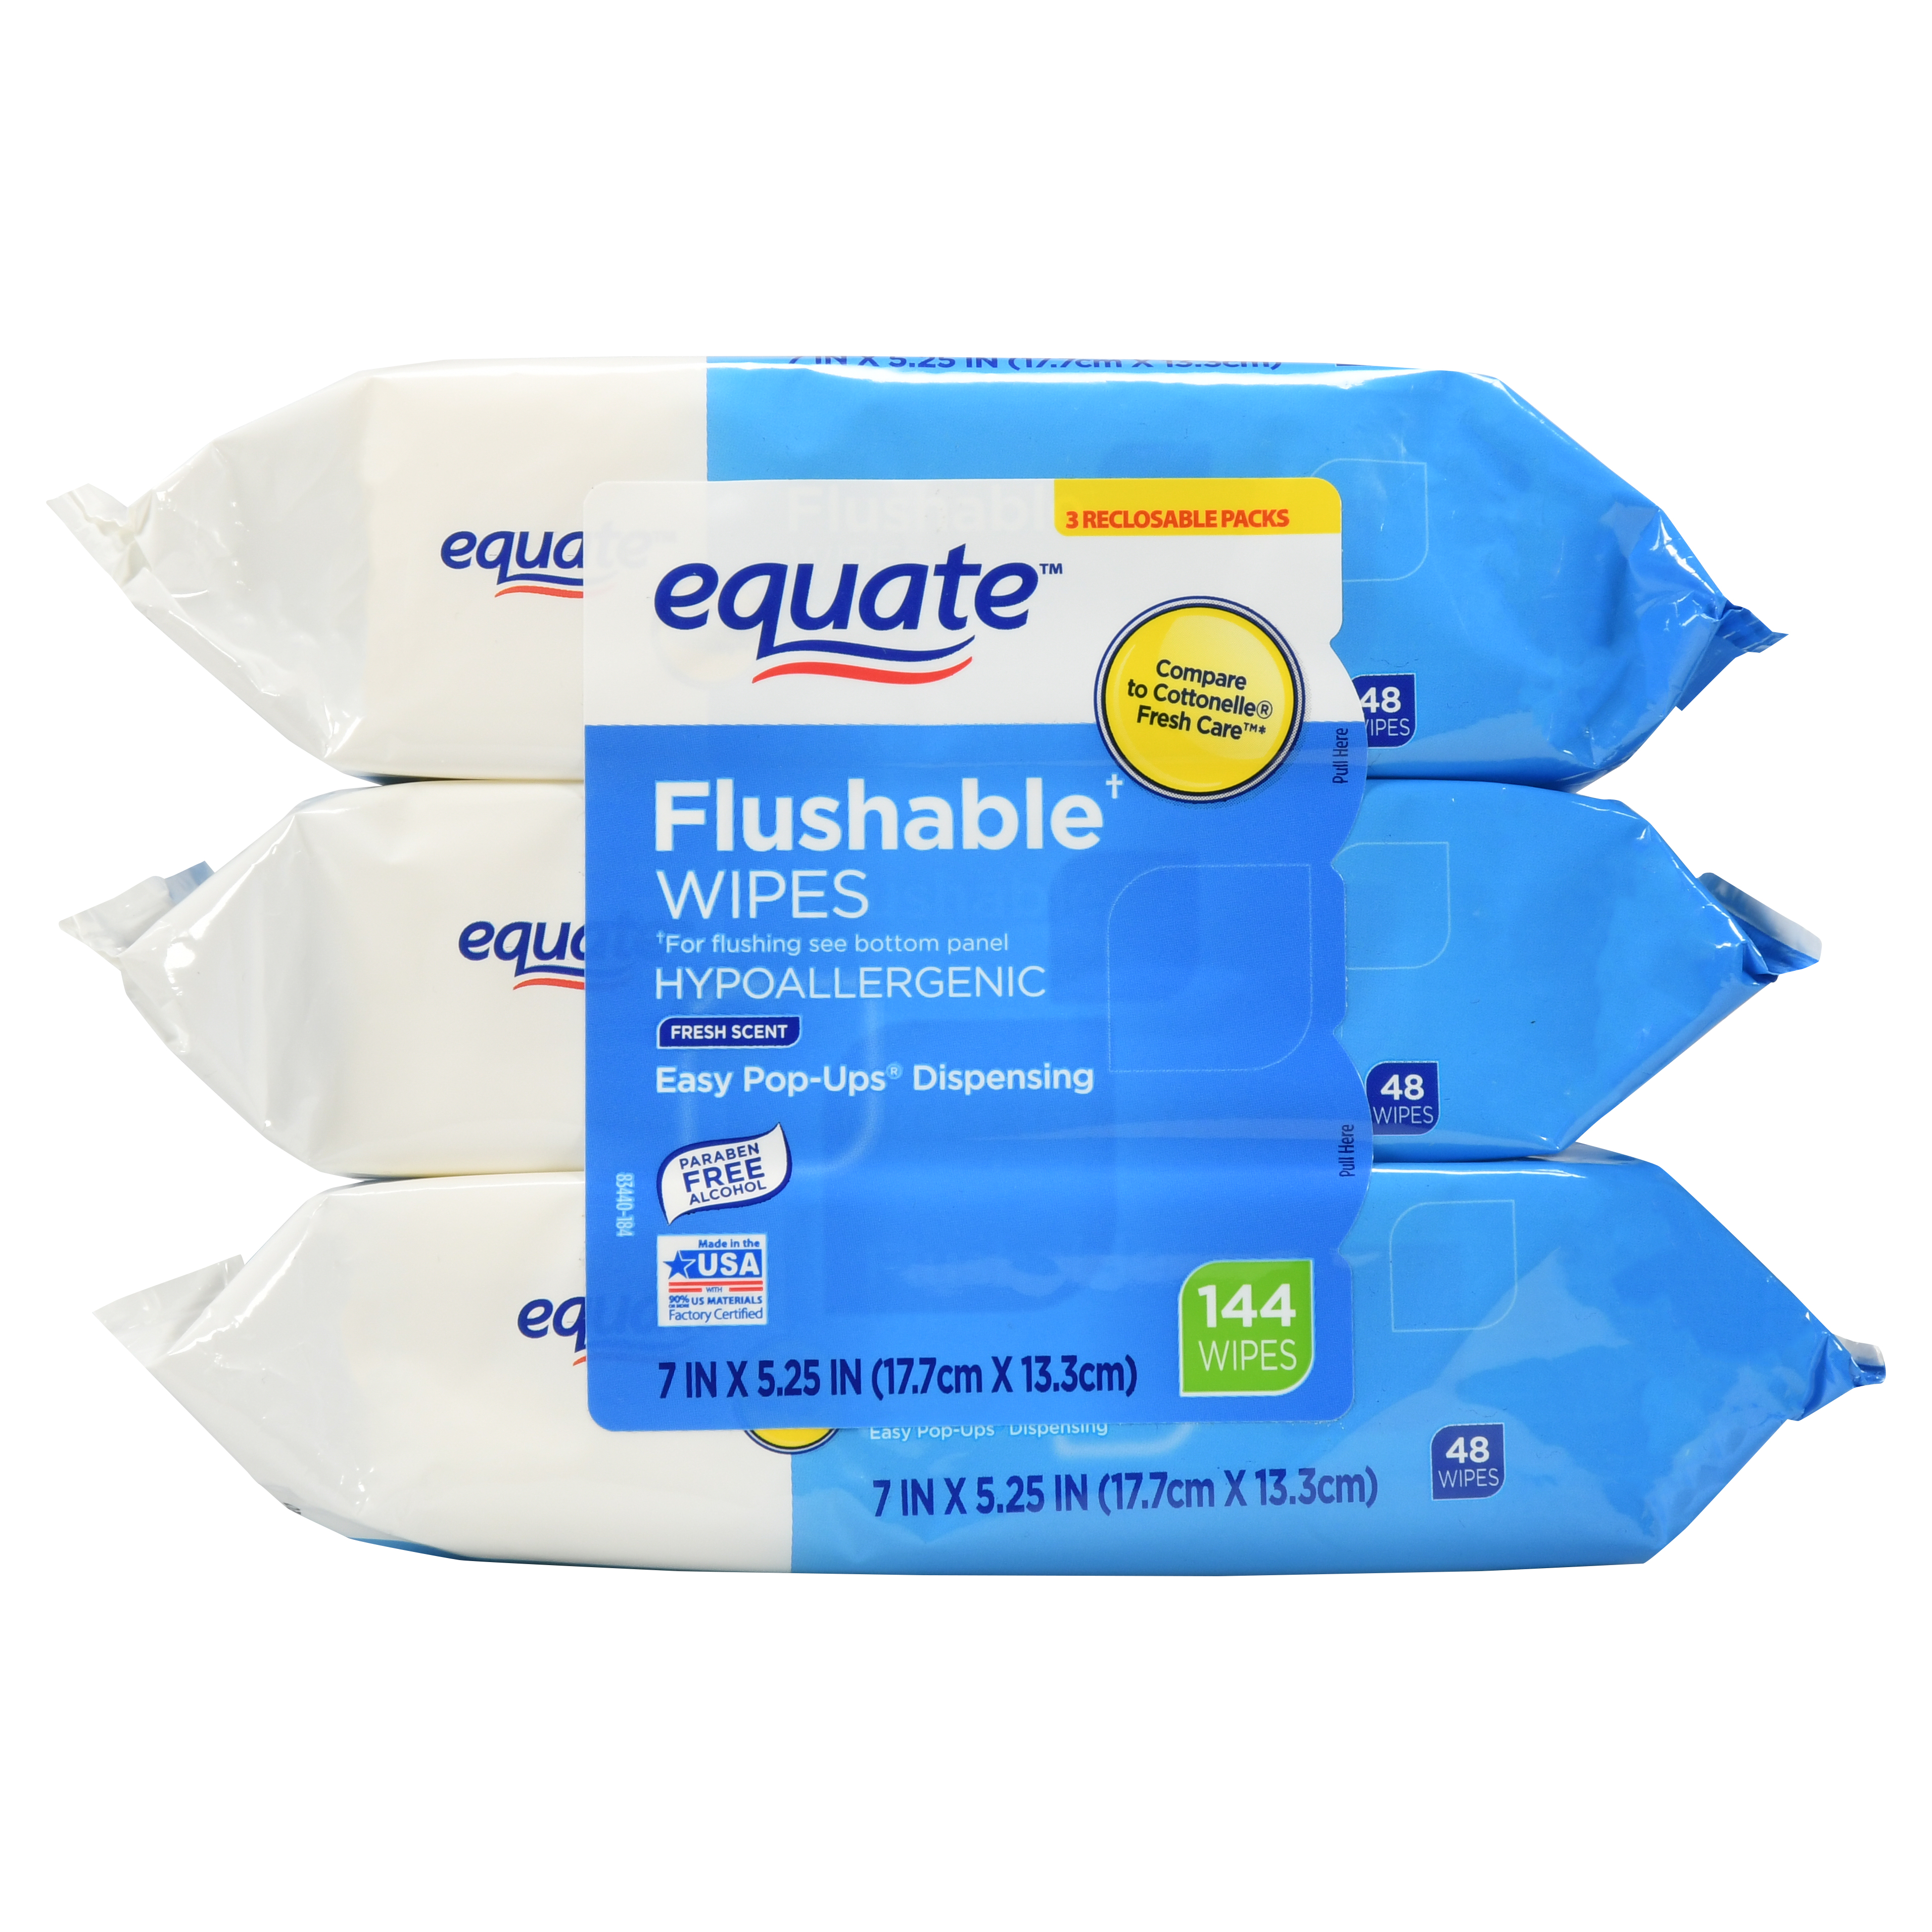 Equate Flushable Wipes, Fresh Scent, 48 Ct, 3 Pack